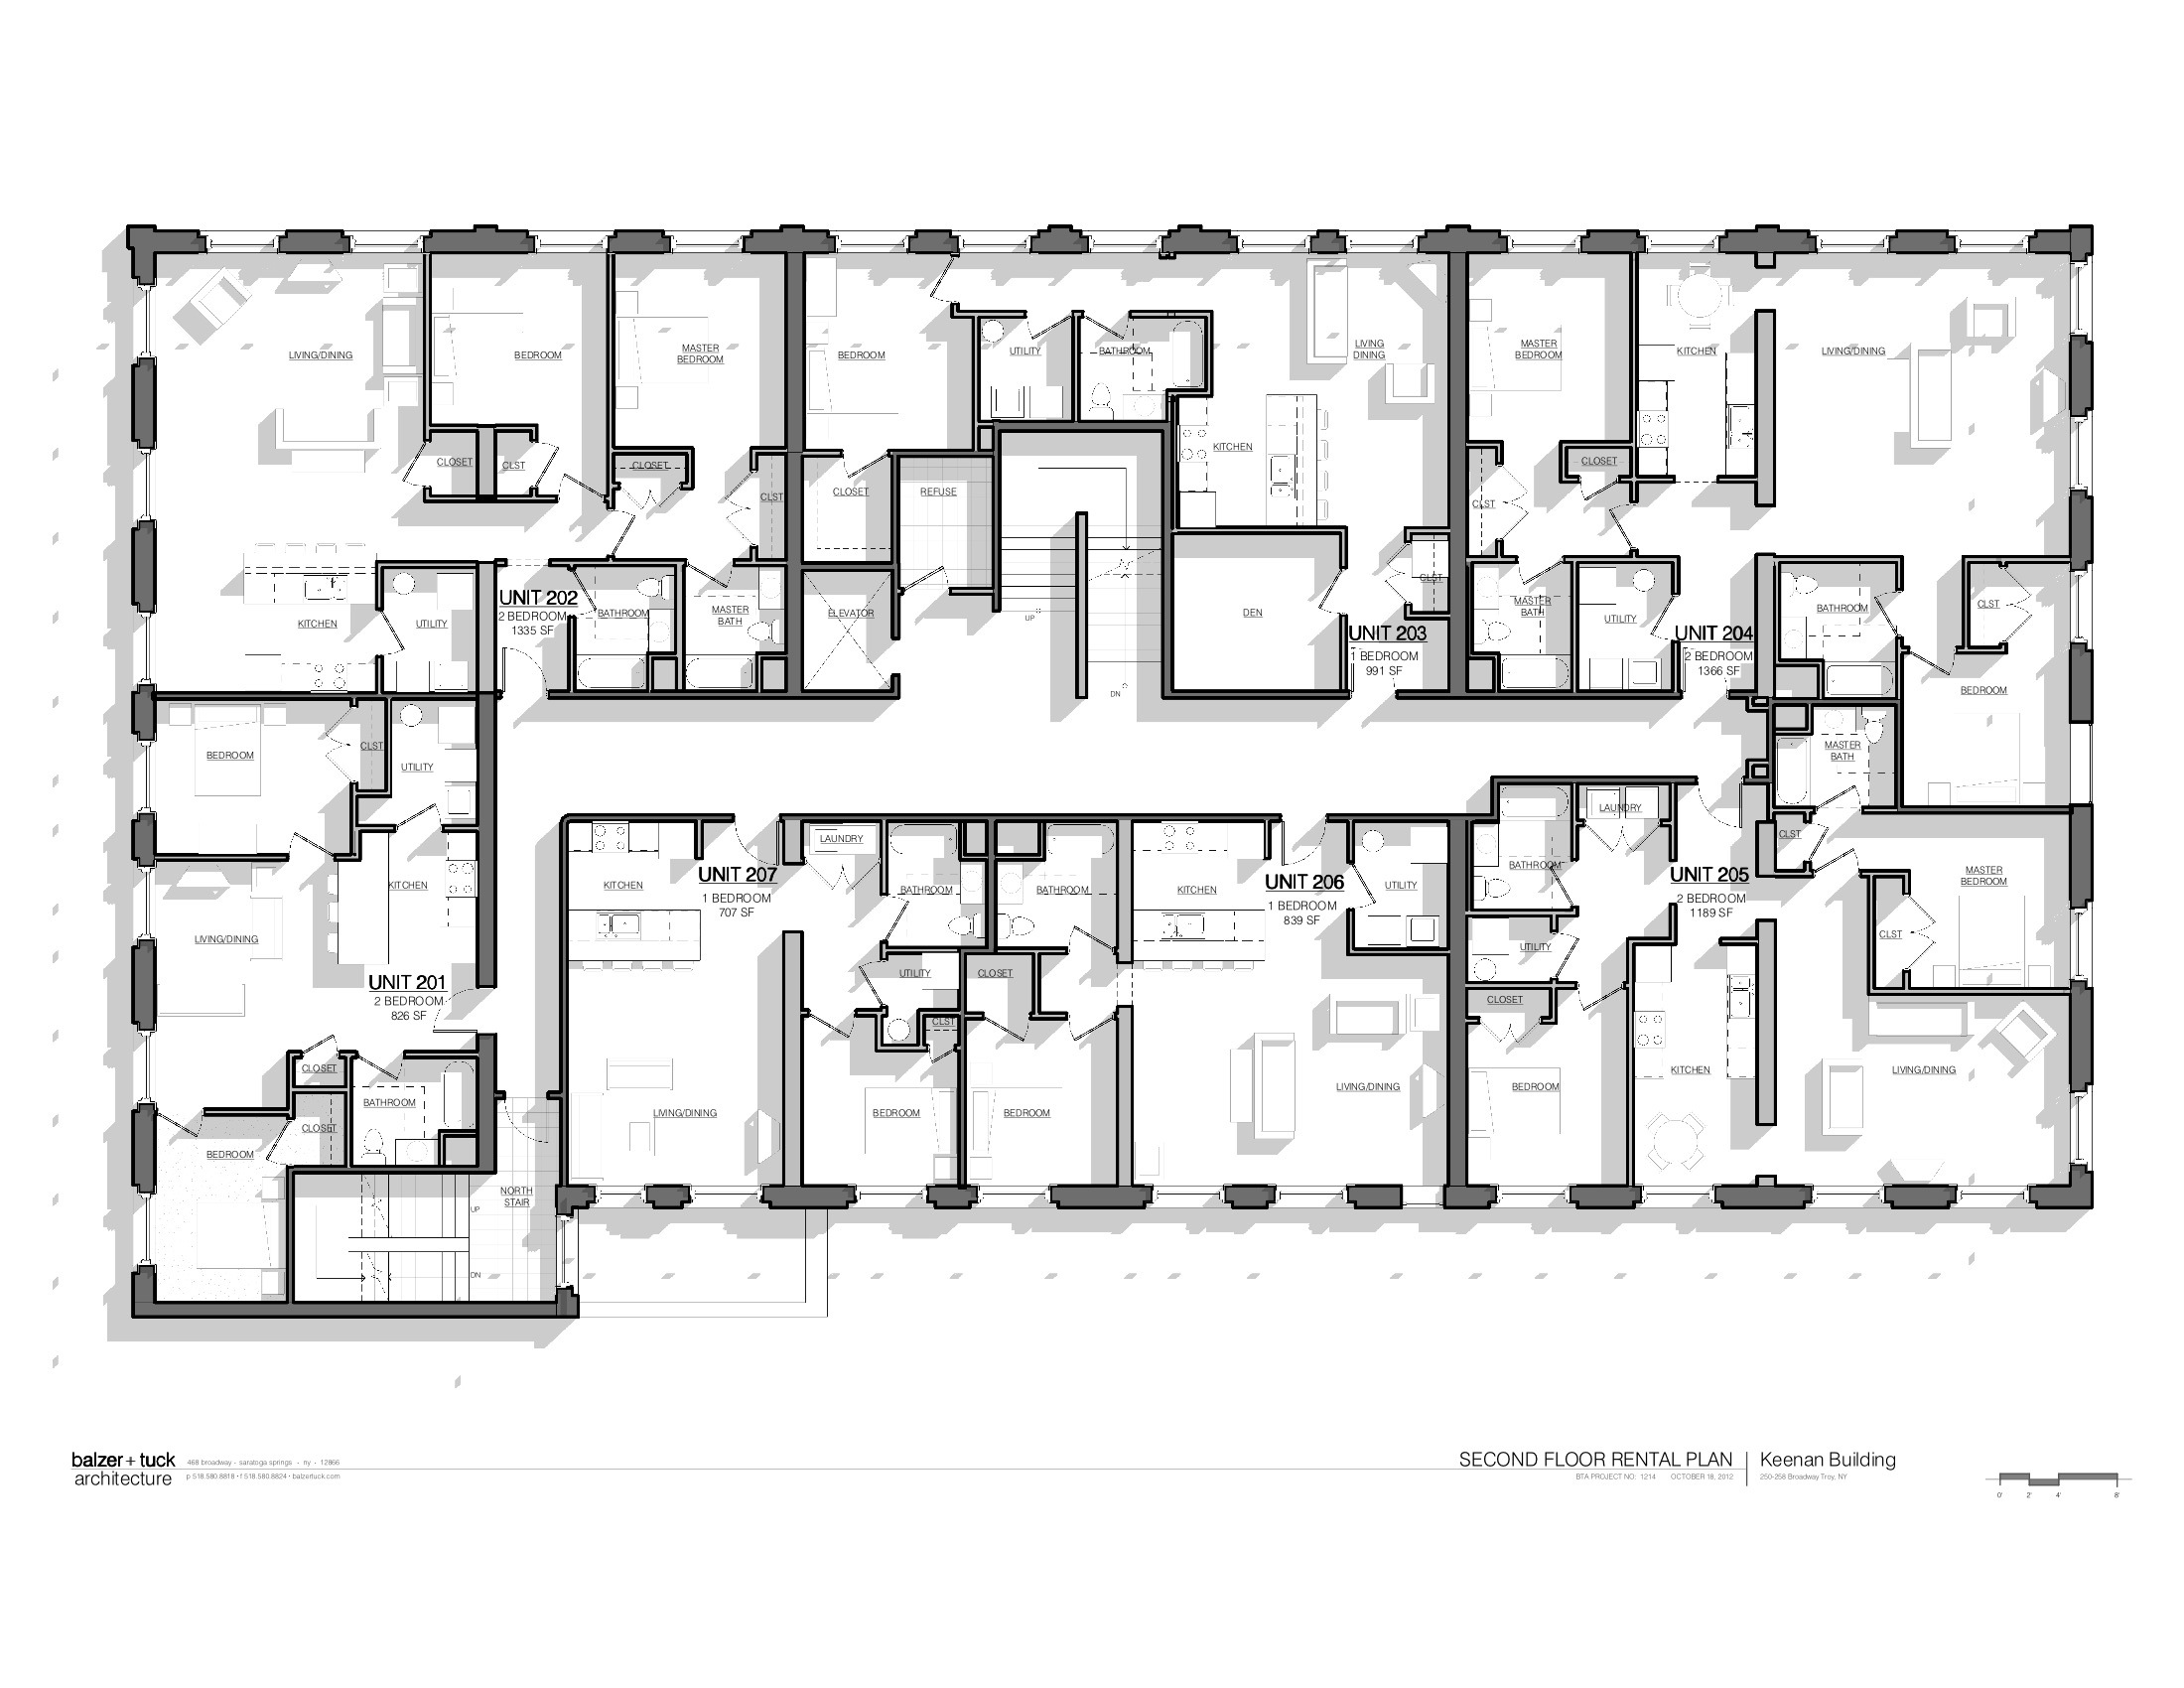 Keenan building floor plans troy new york for New build floor plans